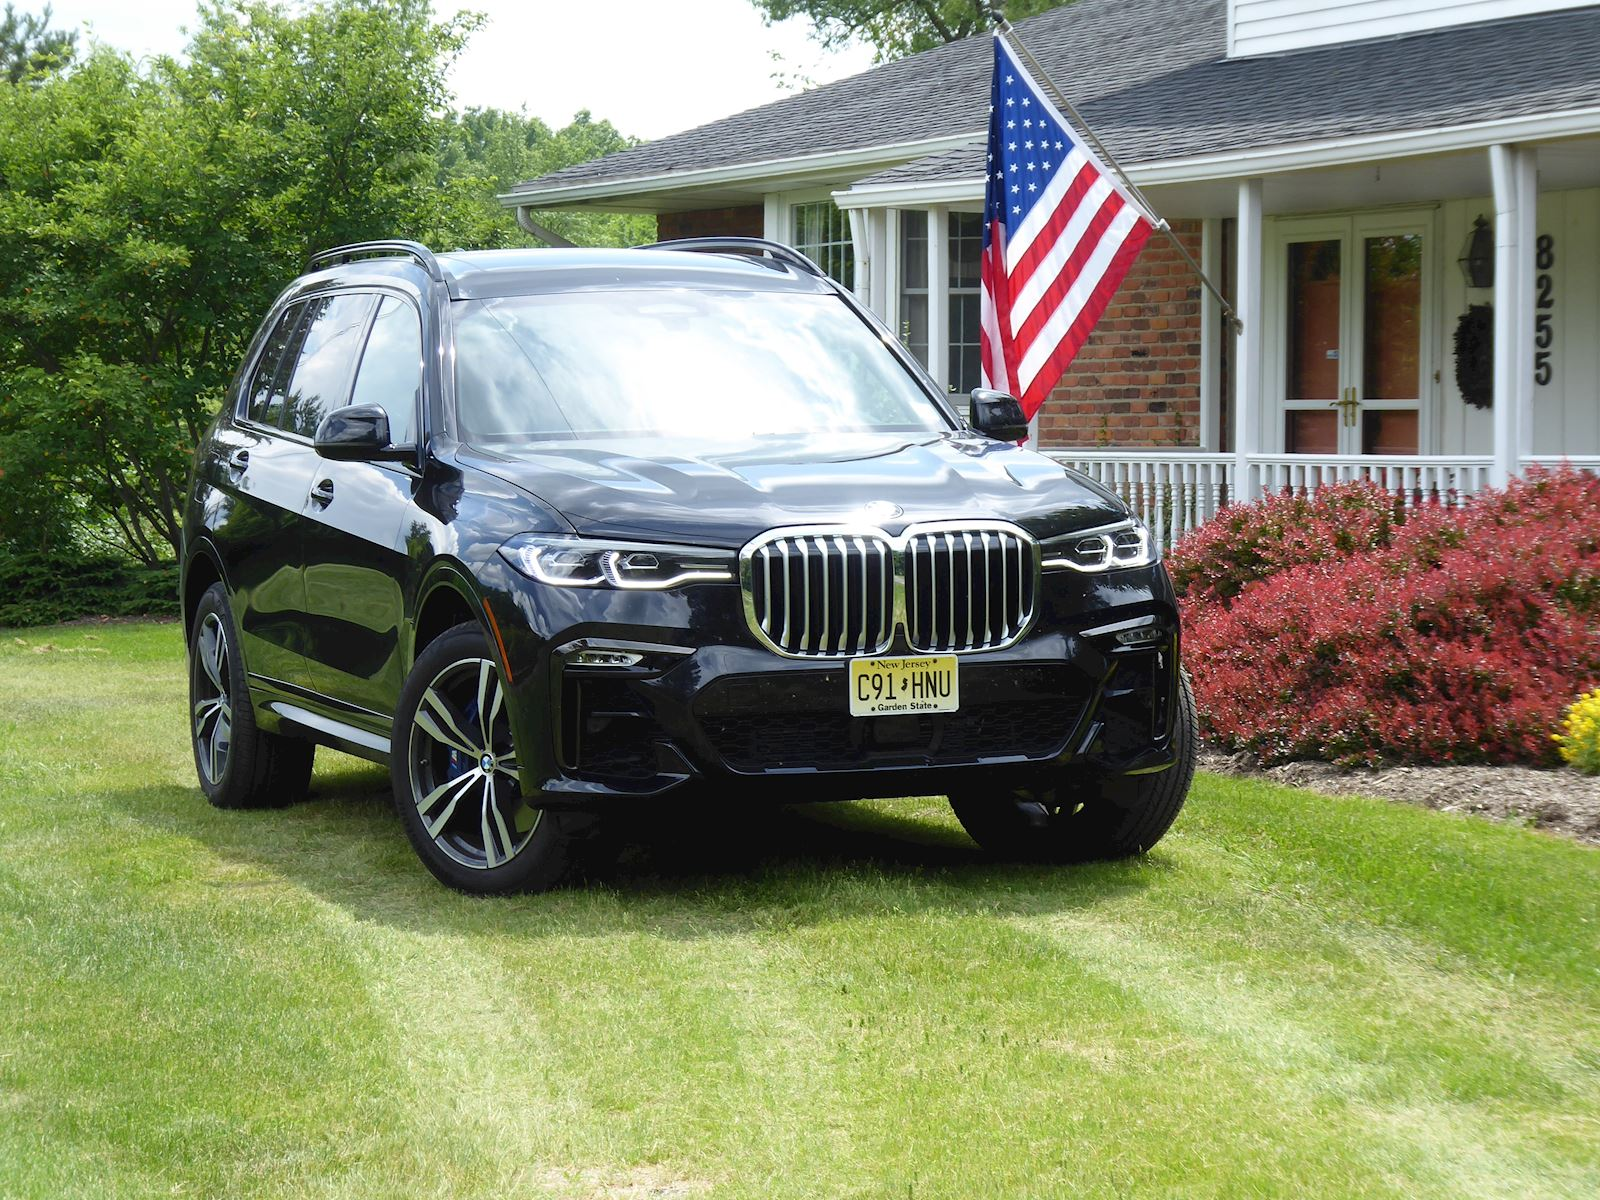 2019 BMW X7 front view photo